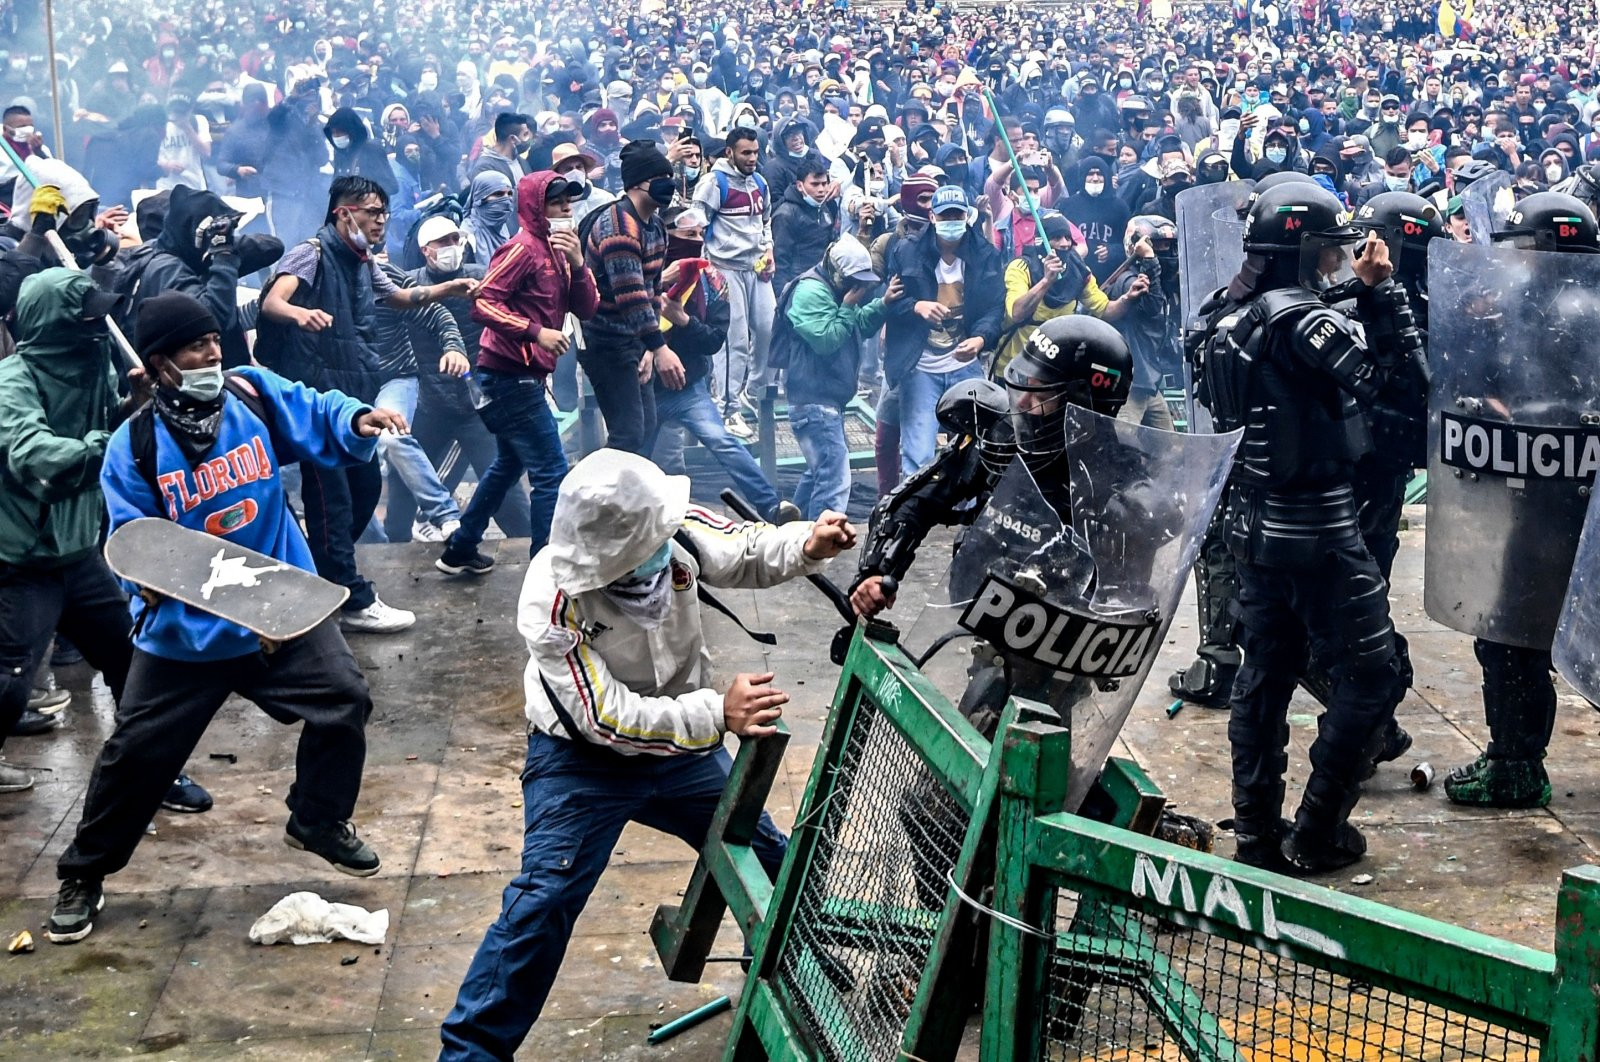 Demonstrators clash with riot police during a protest against a tax reform bill launched by Colombian President Ivan Duque, Bogota, Colombia, April 28, 2021. (AFP Photo)